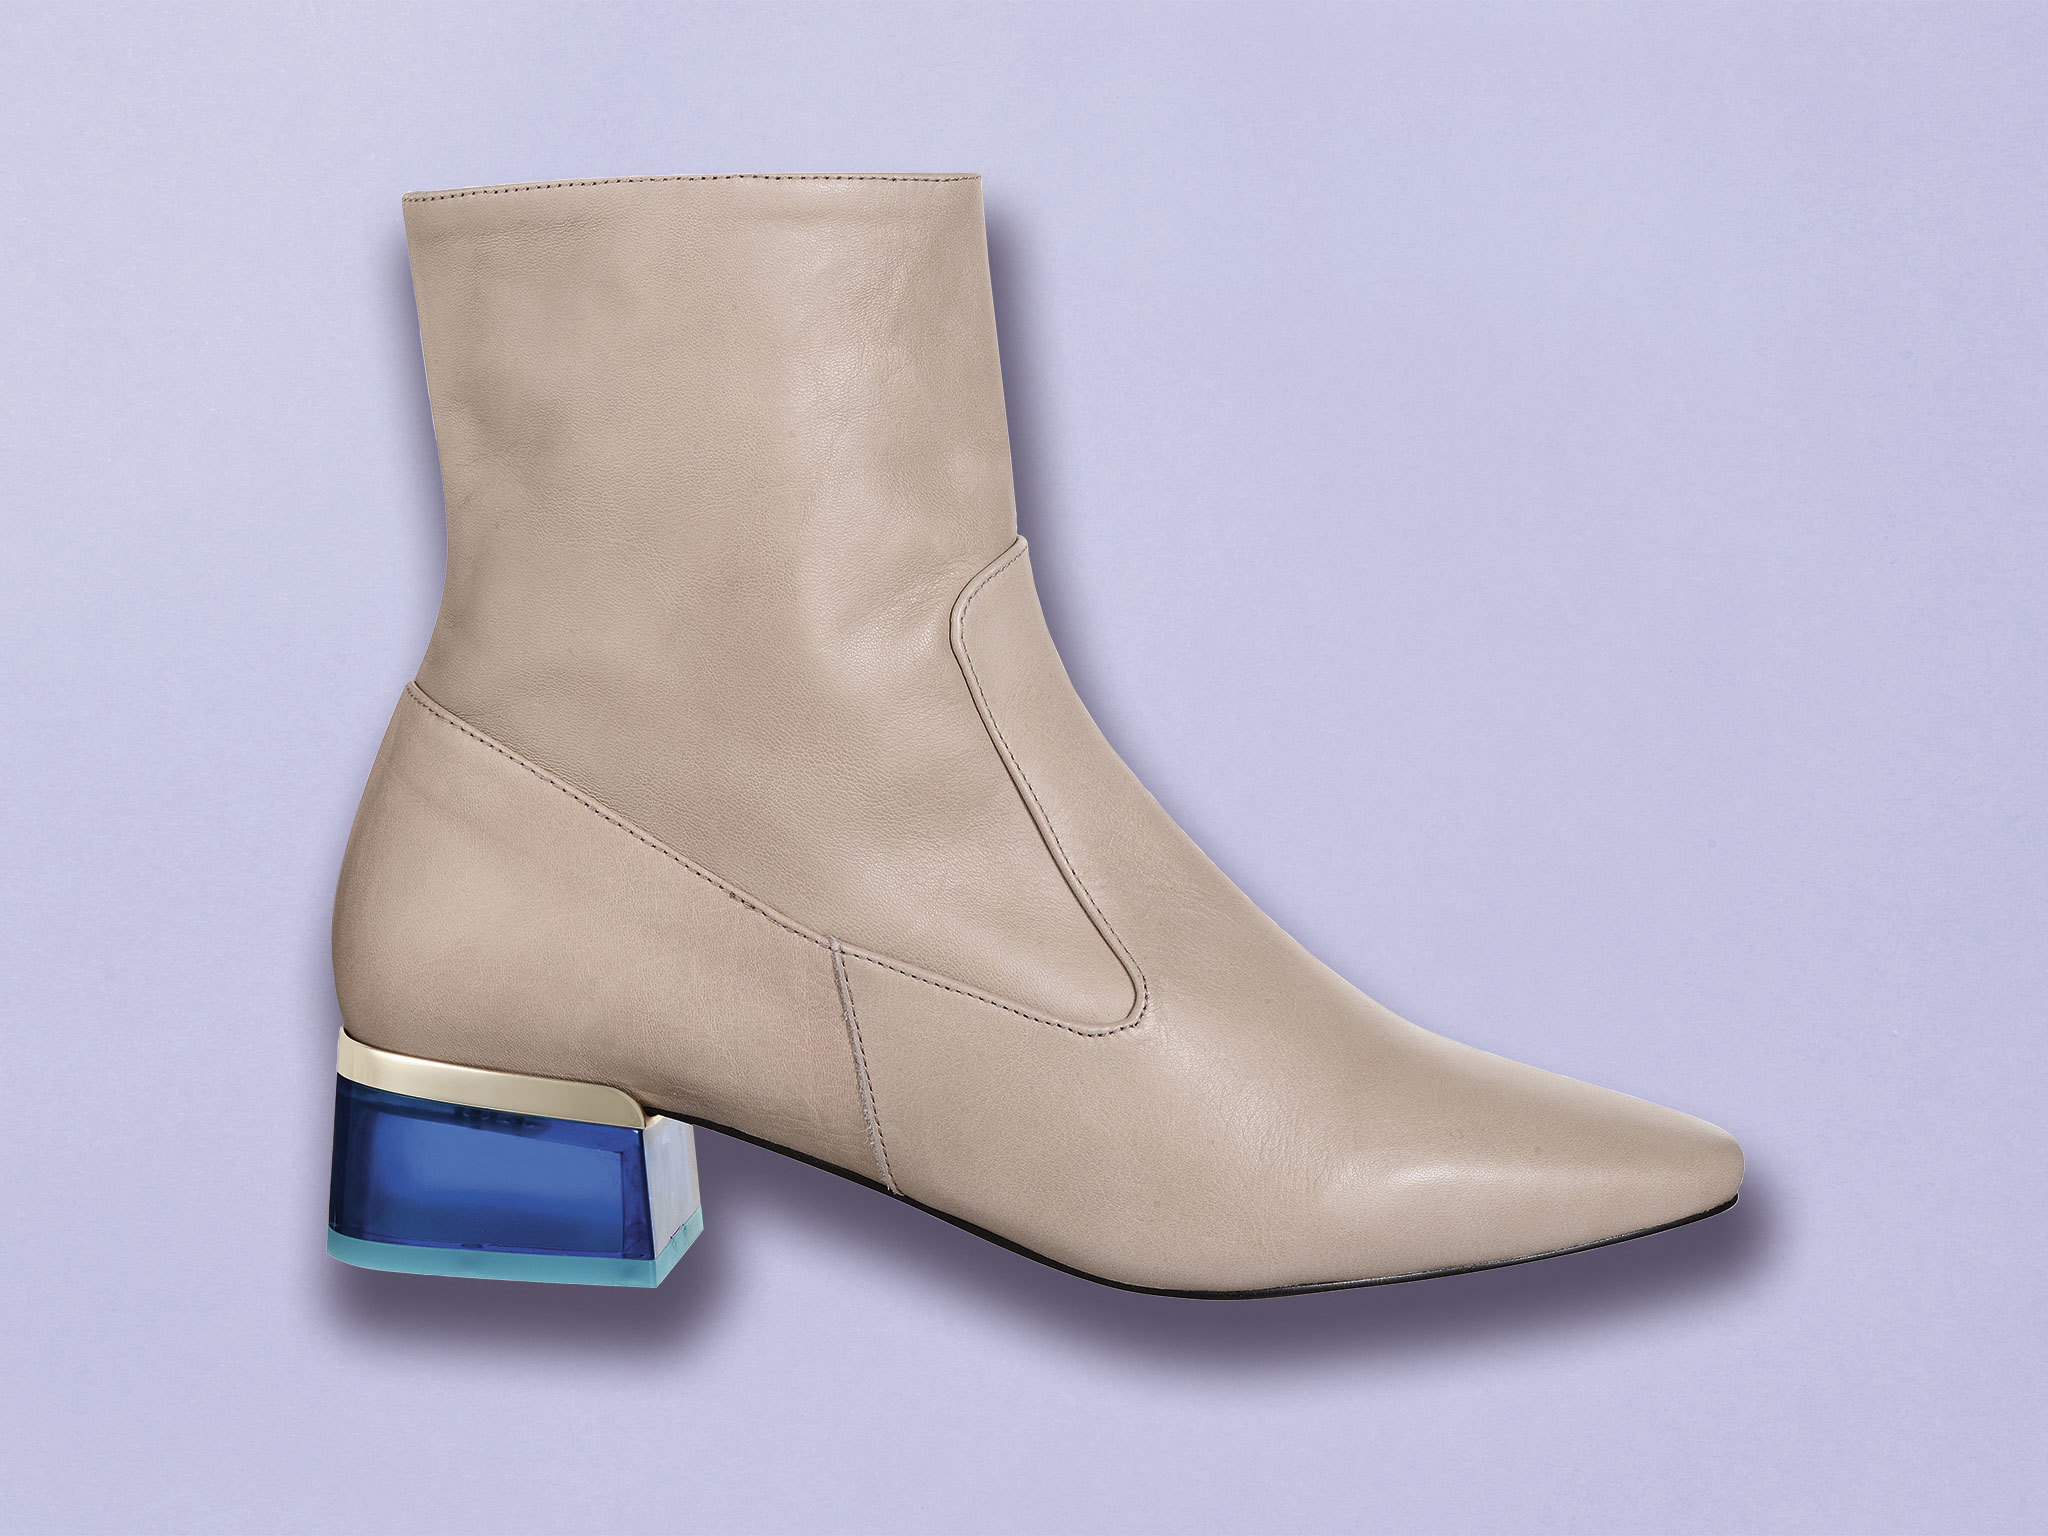 Perspex heeled boots by Topshop